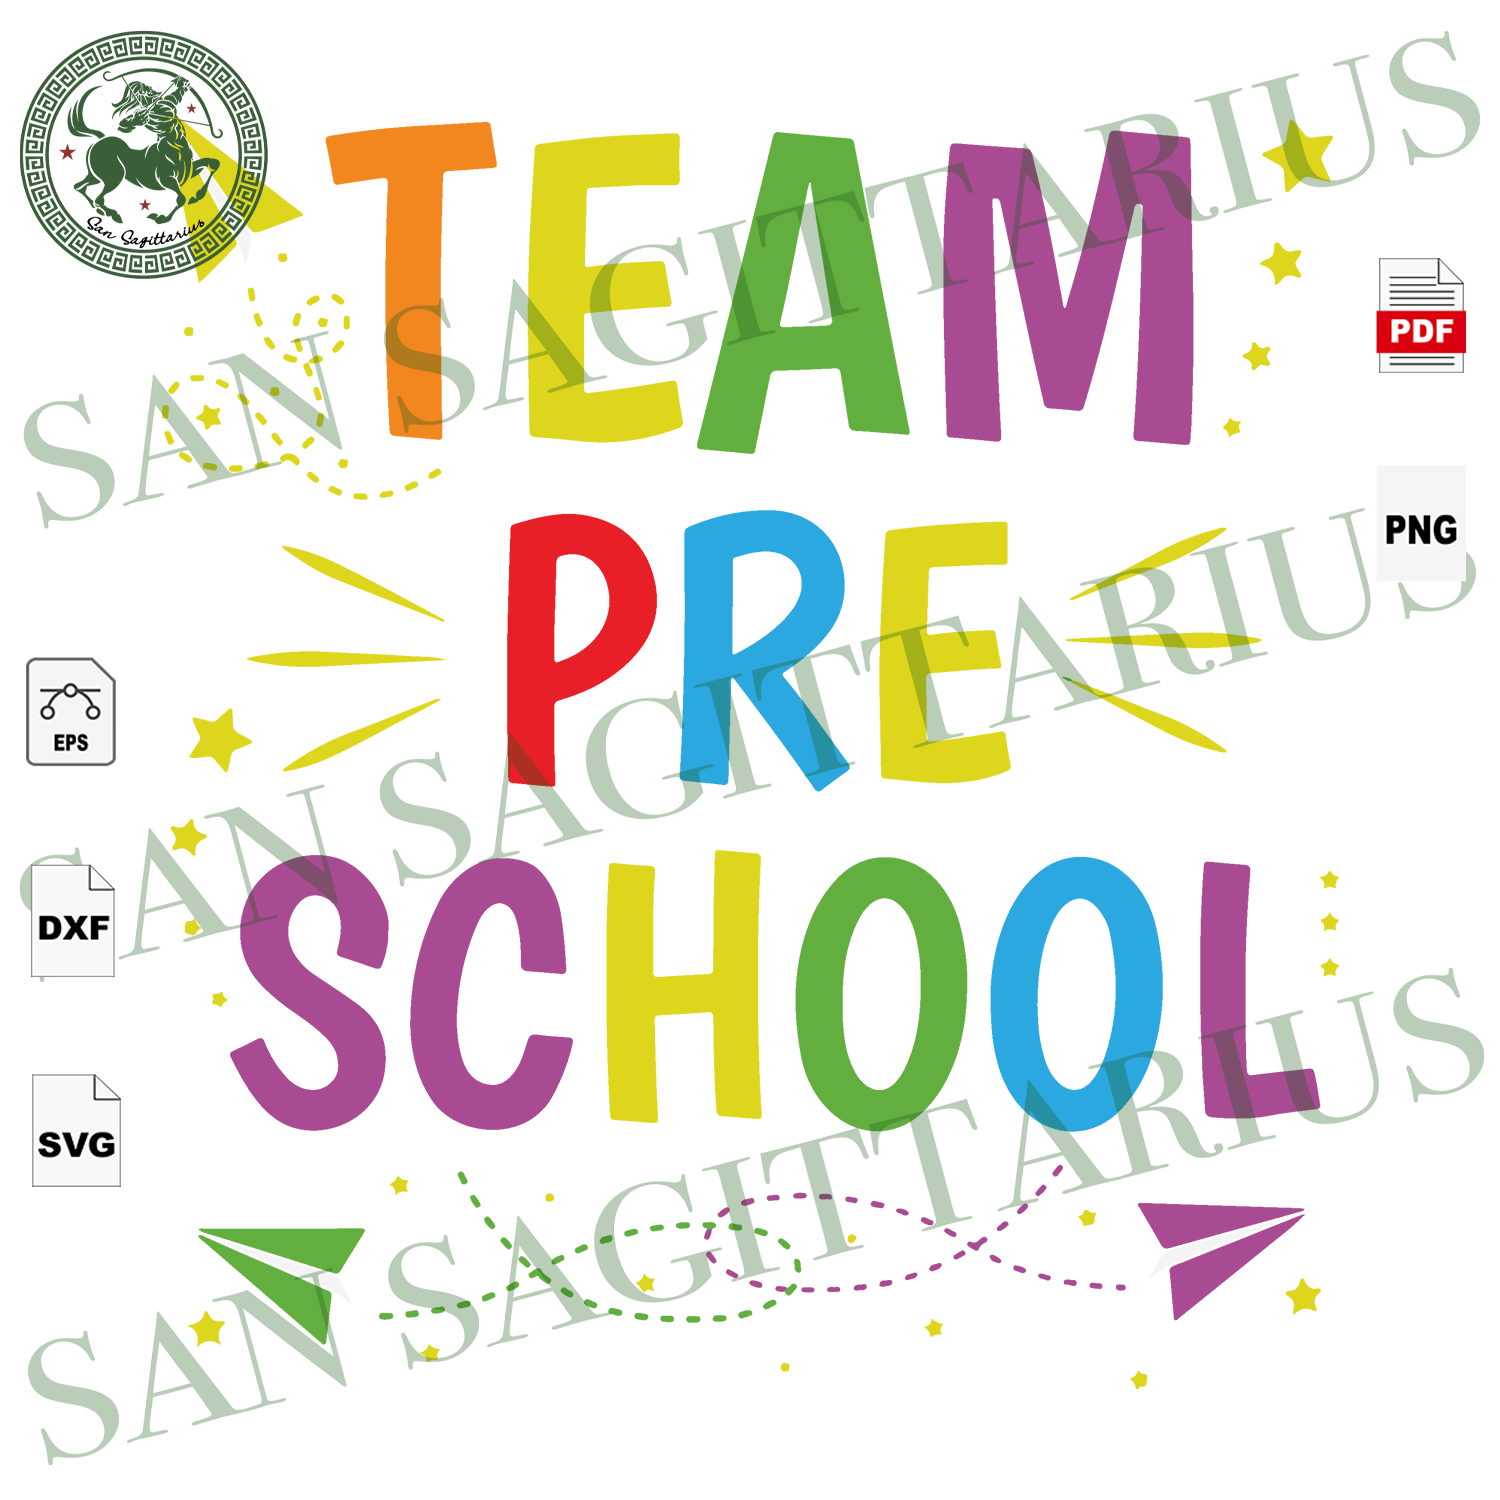 Team PreSchool, Back To School Svg, School Svg, Preschool svg, Preschool gift, First day of school, Student svg, Love School, School Quote, School Boy, School Girl, School Team, Team Svg, Com